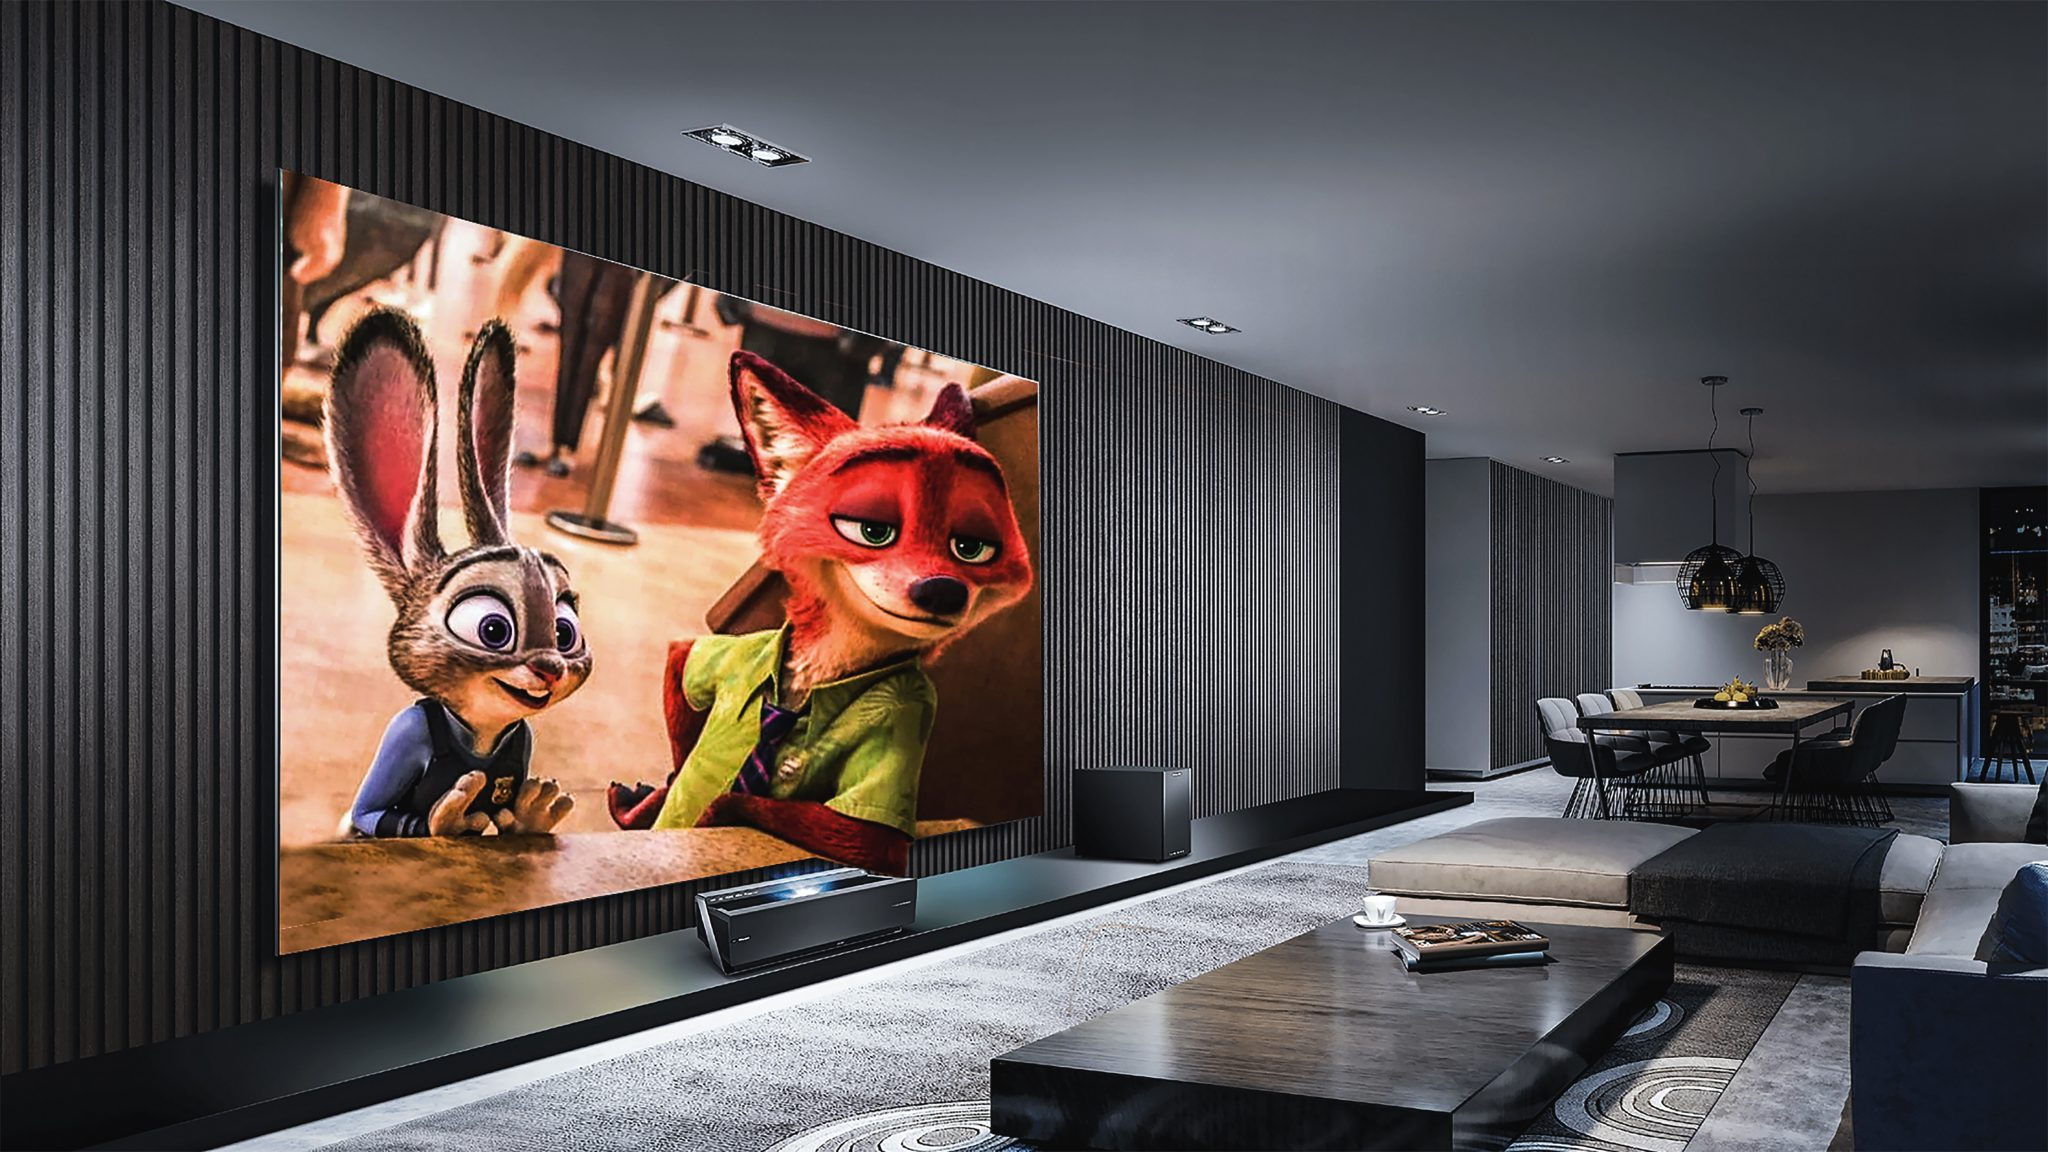 Photo of 10 Best 5.1 Home Theater Systems In India 2020 (Buying Guide & Review)